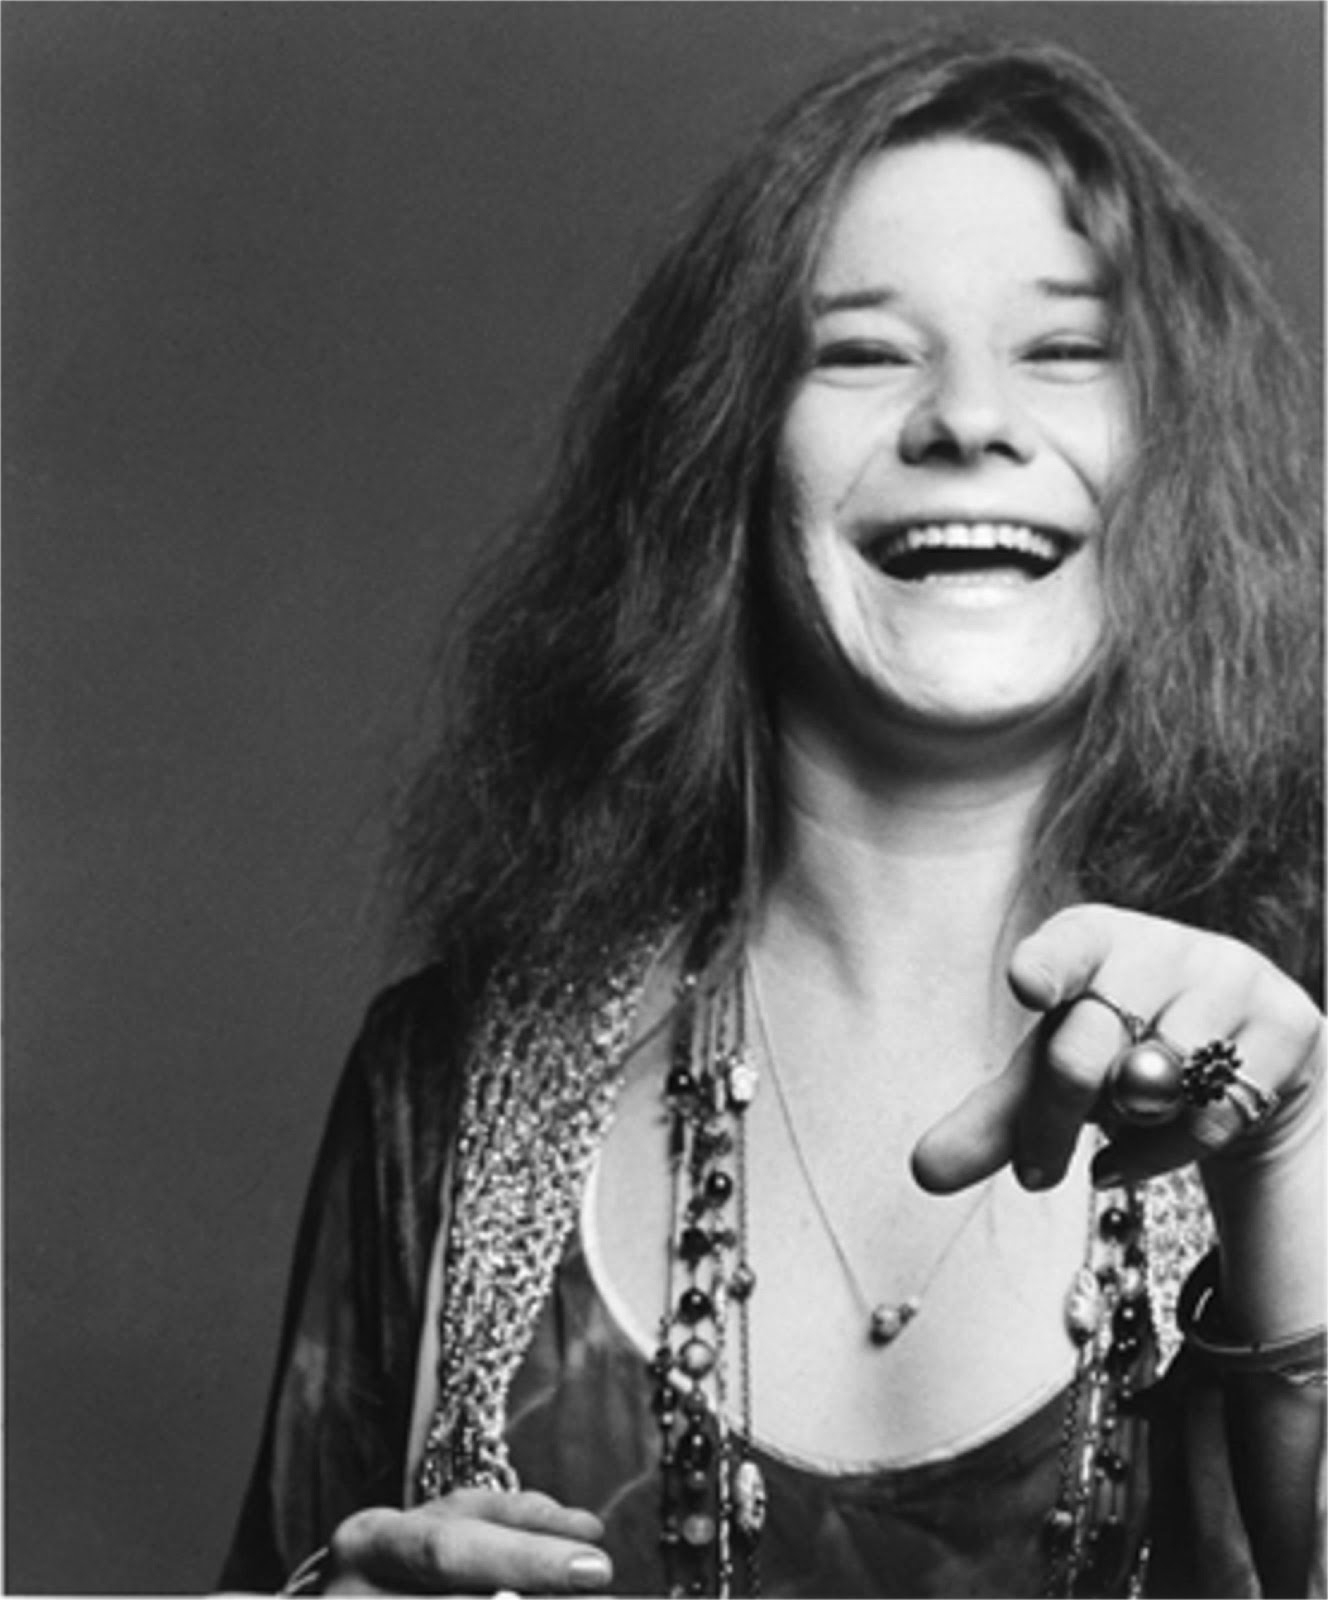 RIP Janis Joplin. Dead 45 years ago today *VIDEO*